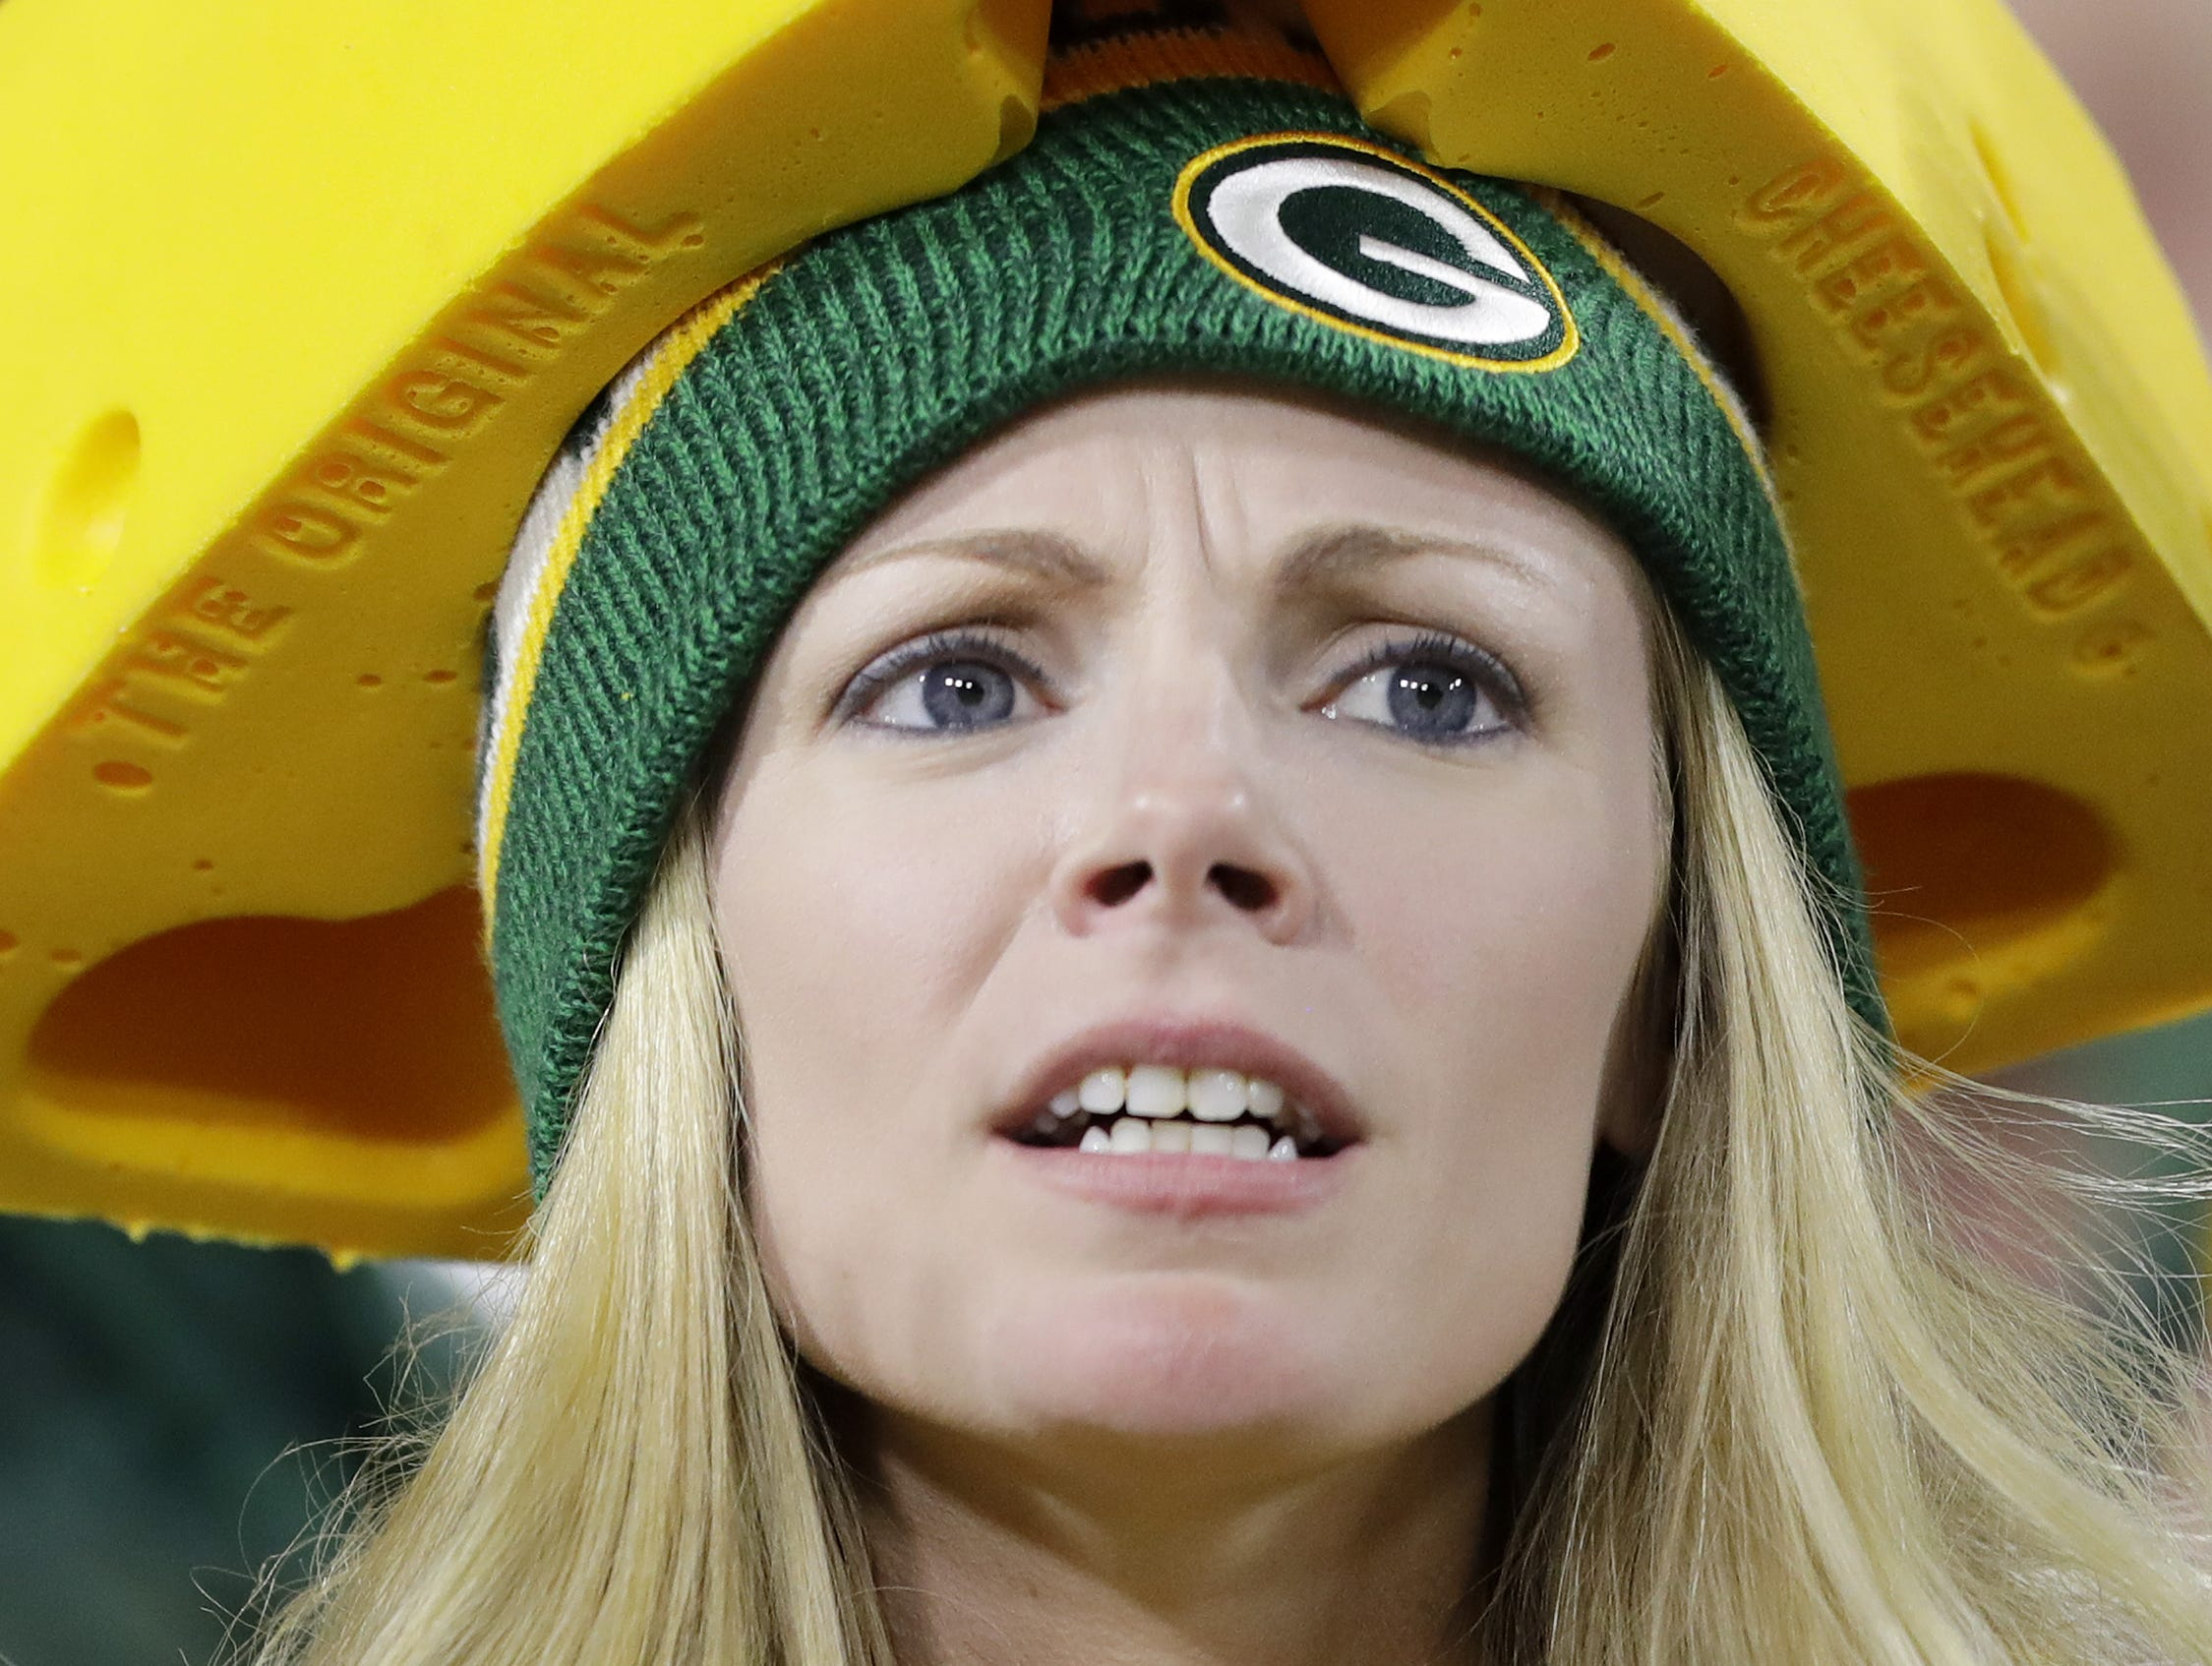 A Green Bay Packers fan watches during the first half against the Chicago Bears at Lambeau Field on Sunday, September 9, 2018 in Green Bay, Wis.